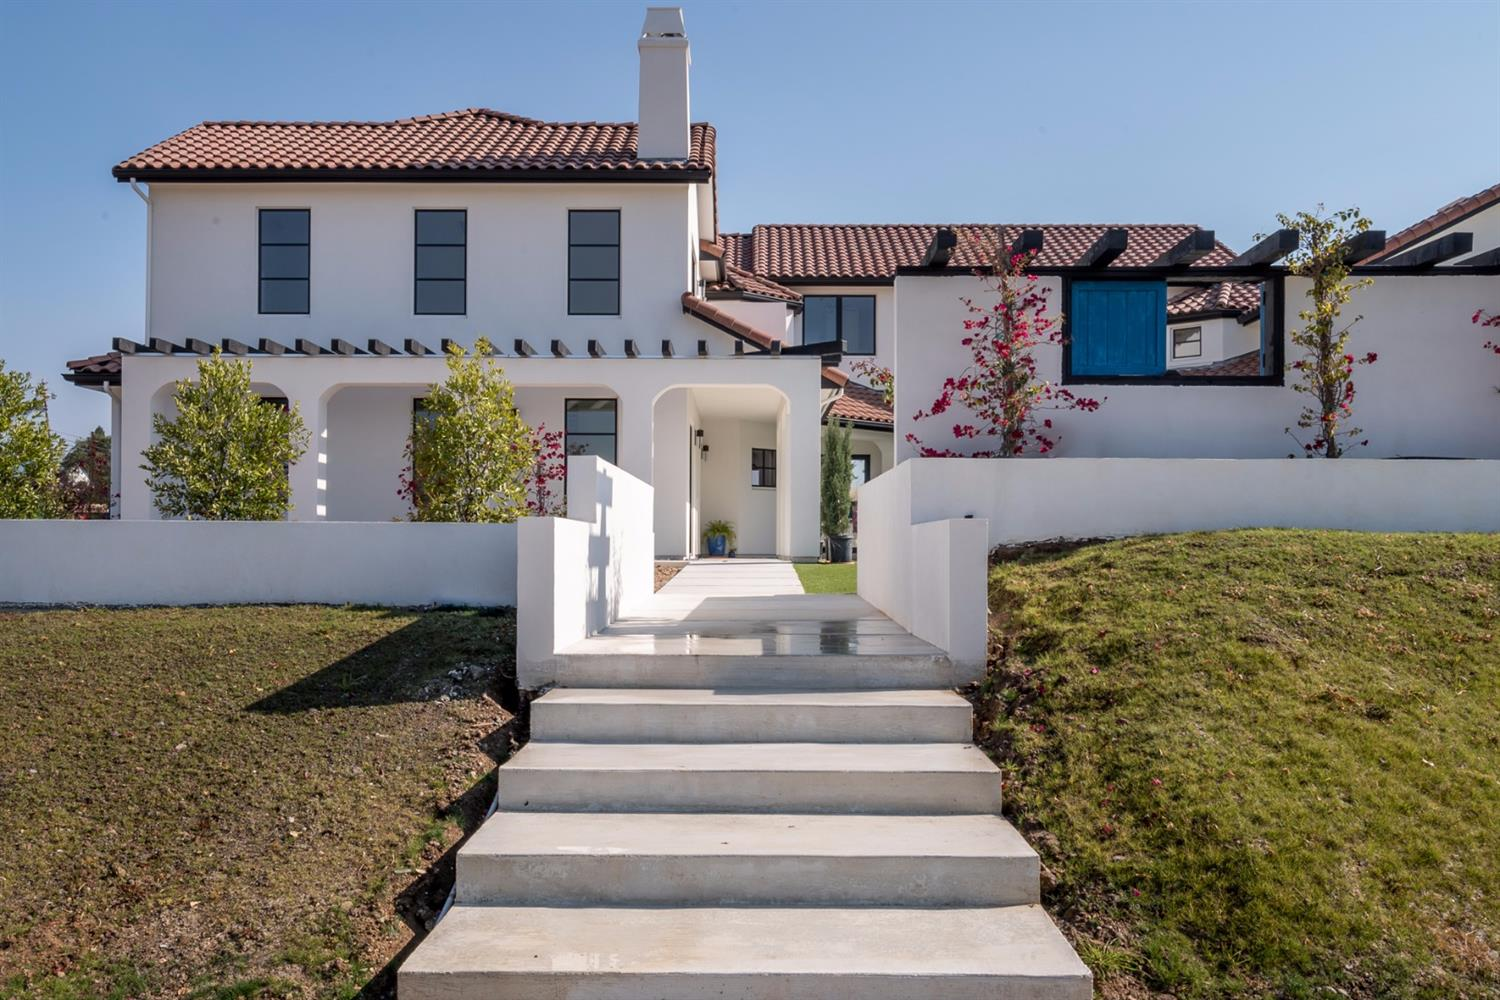 NEW CONSTRUCTION! Elegant Contemporary recently completed in 2017. Located in gated Chelshire Estates. Dramatic homesite w/over .50 acre of dedicated space for entertaining. Ample guest parking. Stunning courtyard w/ B/I 40' pool & spa, outdoor fire place(s) & 3 water features. Indoor/Outdoor Living Concept. Chef's kitchen. Wine RM, 10' Pella Doors & Windows.  His/Her master bath & closets, sliding barn doors, Separate his/her bidet's/baths. Detached guest quarters. Very private. Eureka Schools.